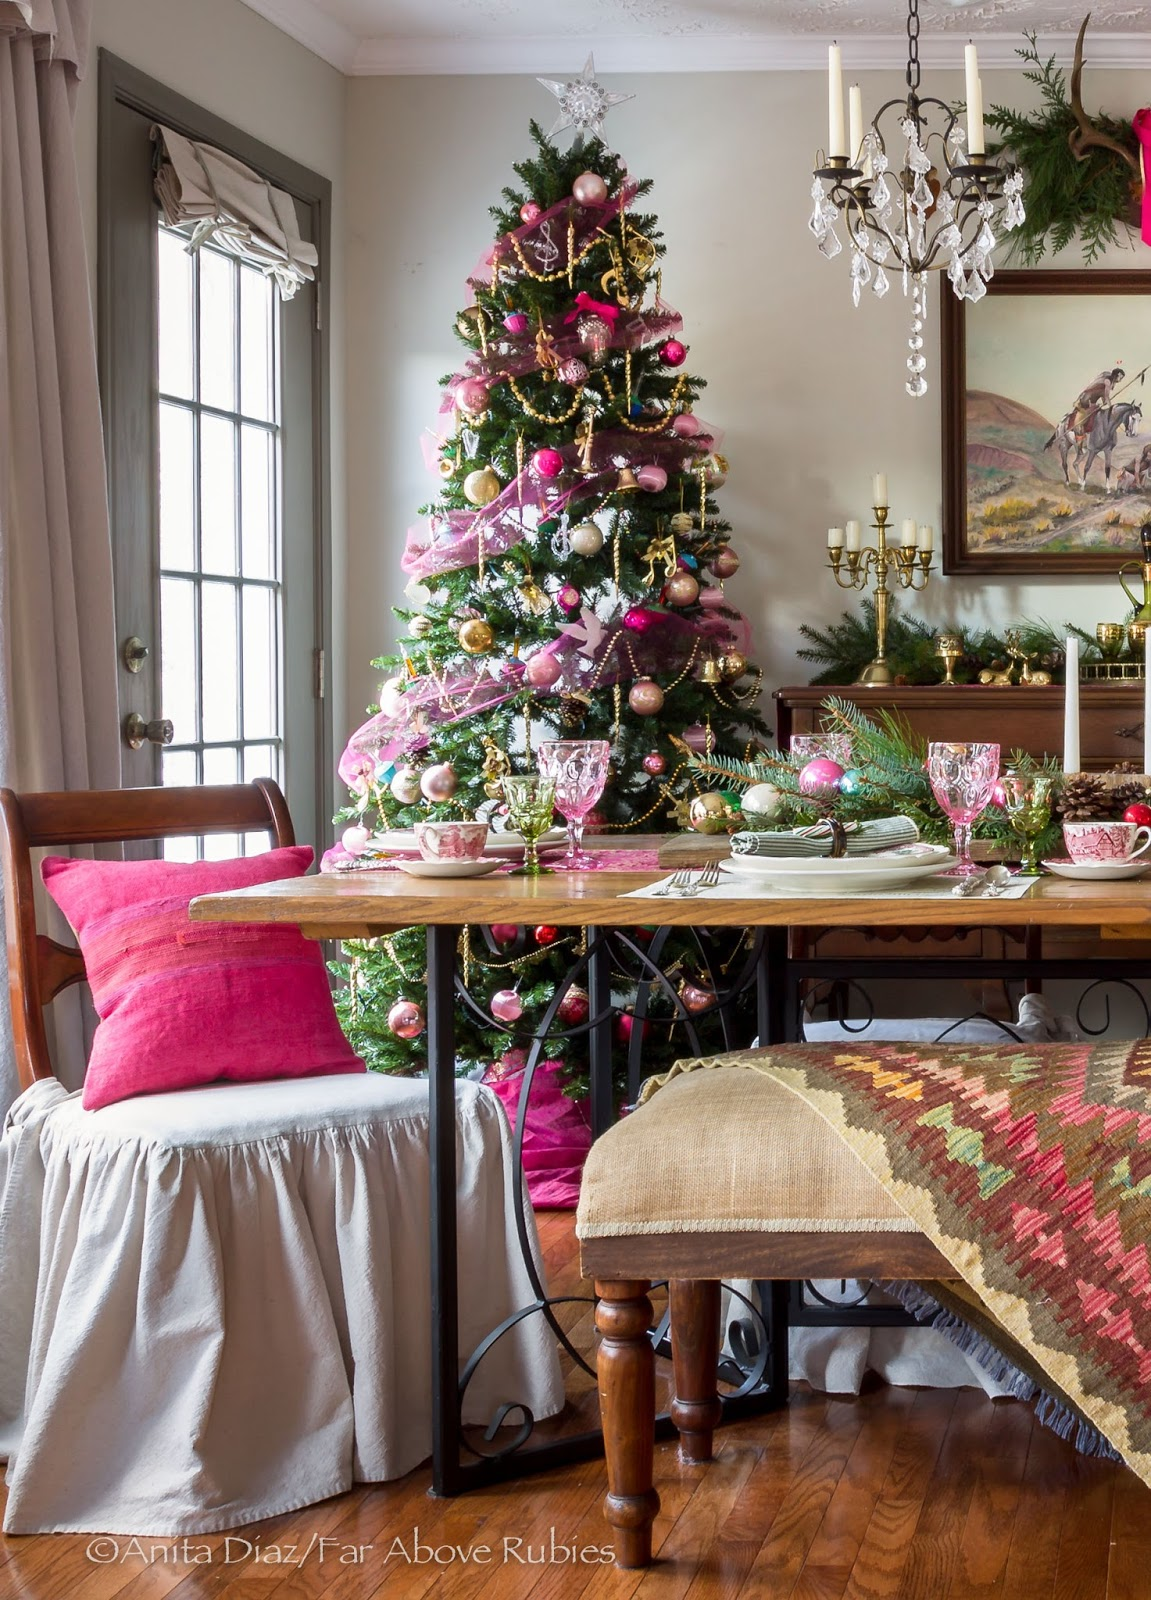 far above rubies christmas dining room and kitchen pics that didn i had this christmas tree but had not used it in a several years i decided to put it here in this spot and ended up loving it there